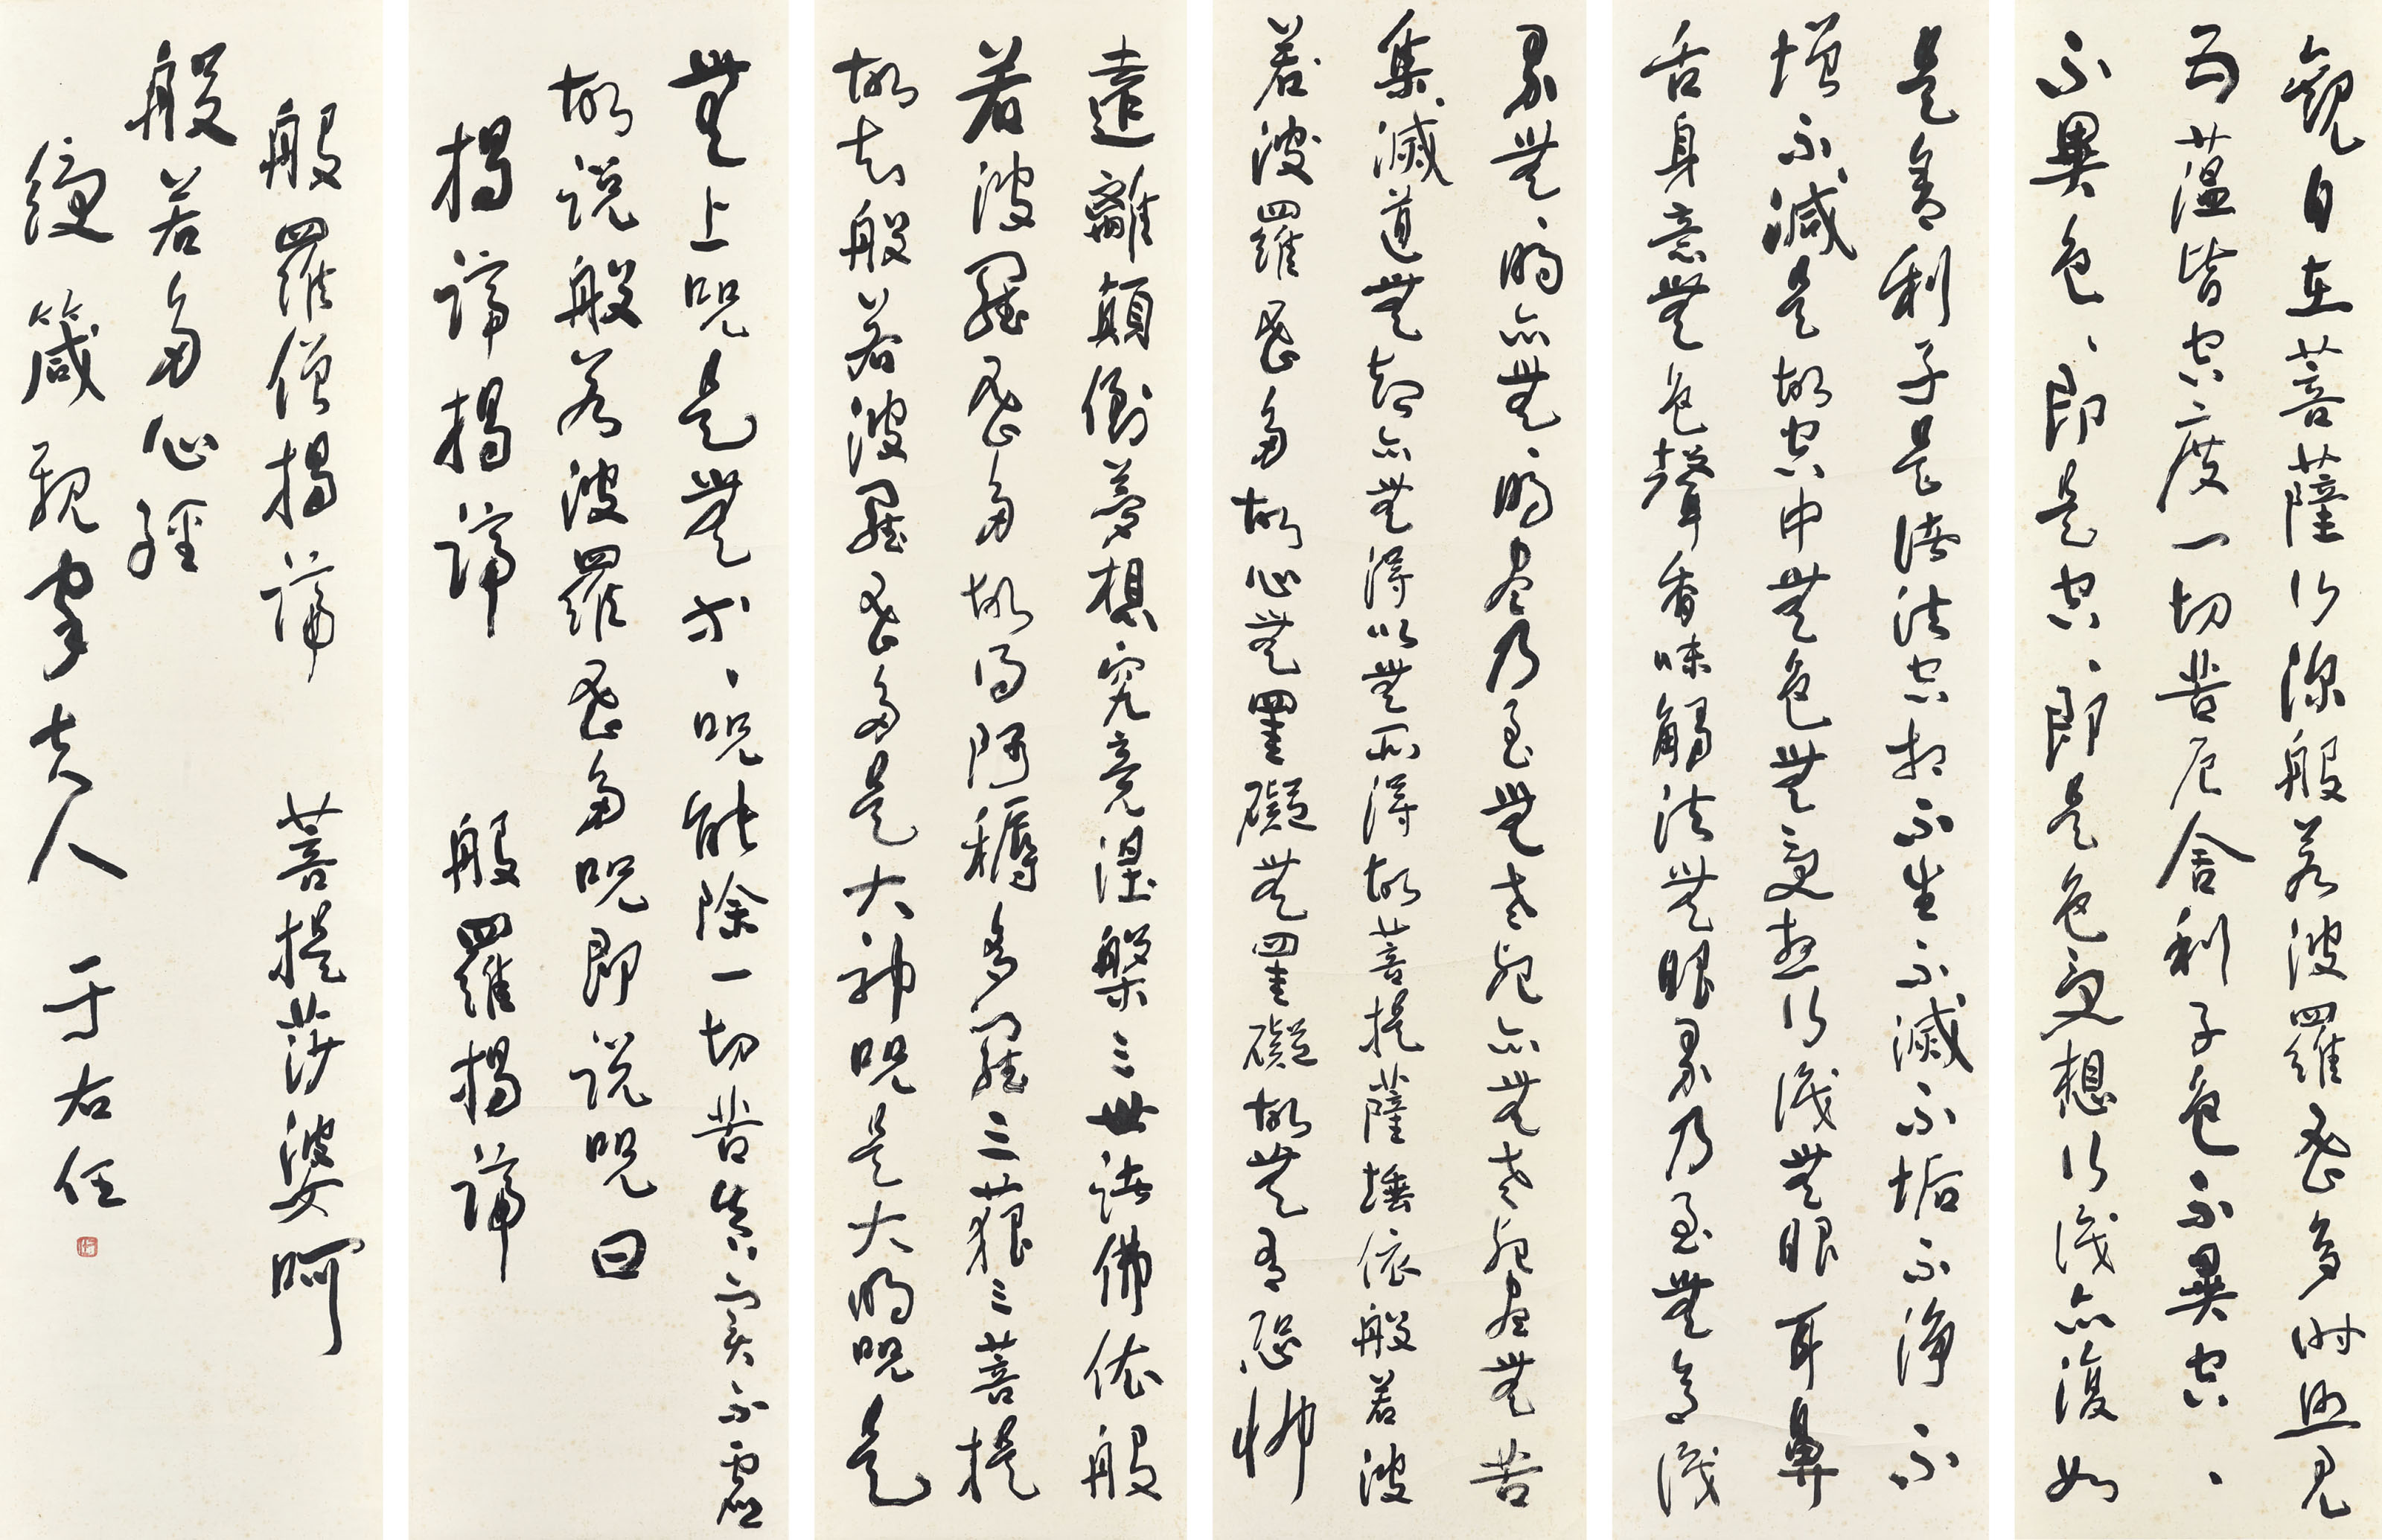 Heart Sutra in Running Script